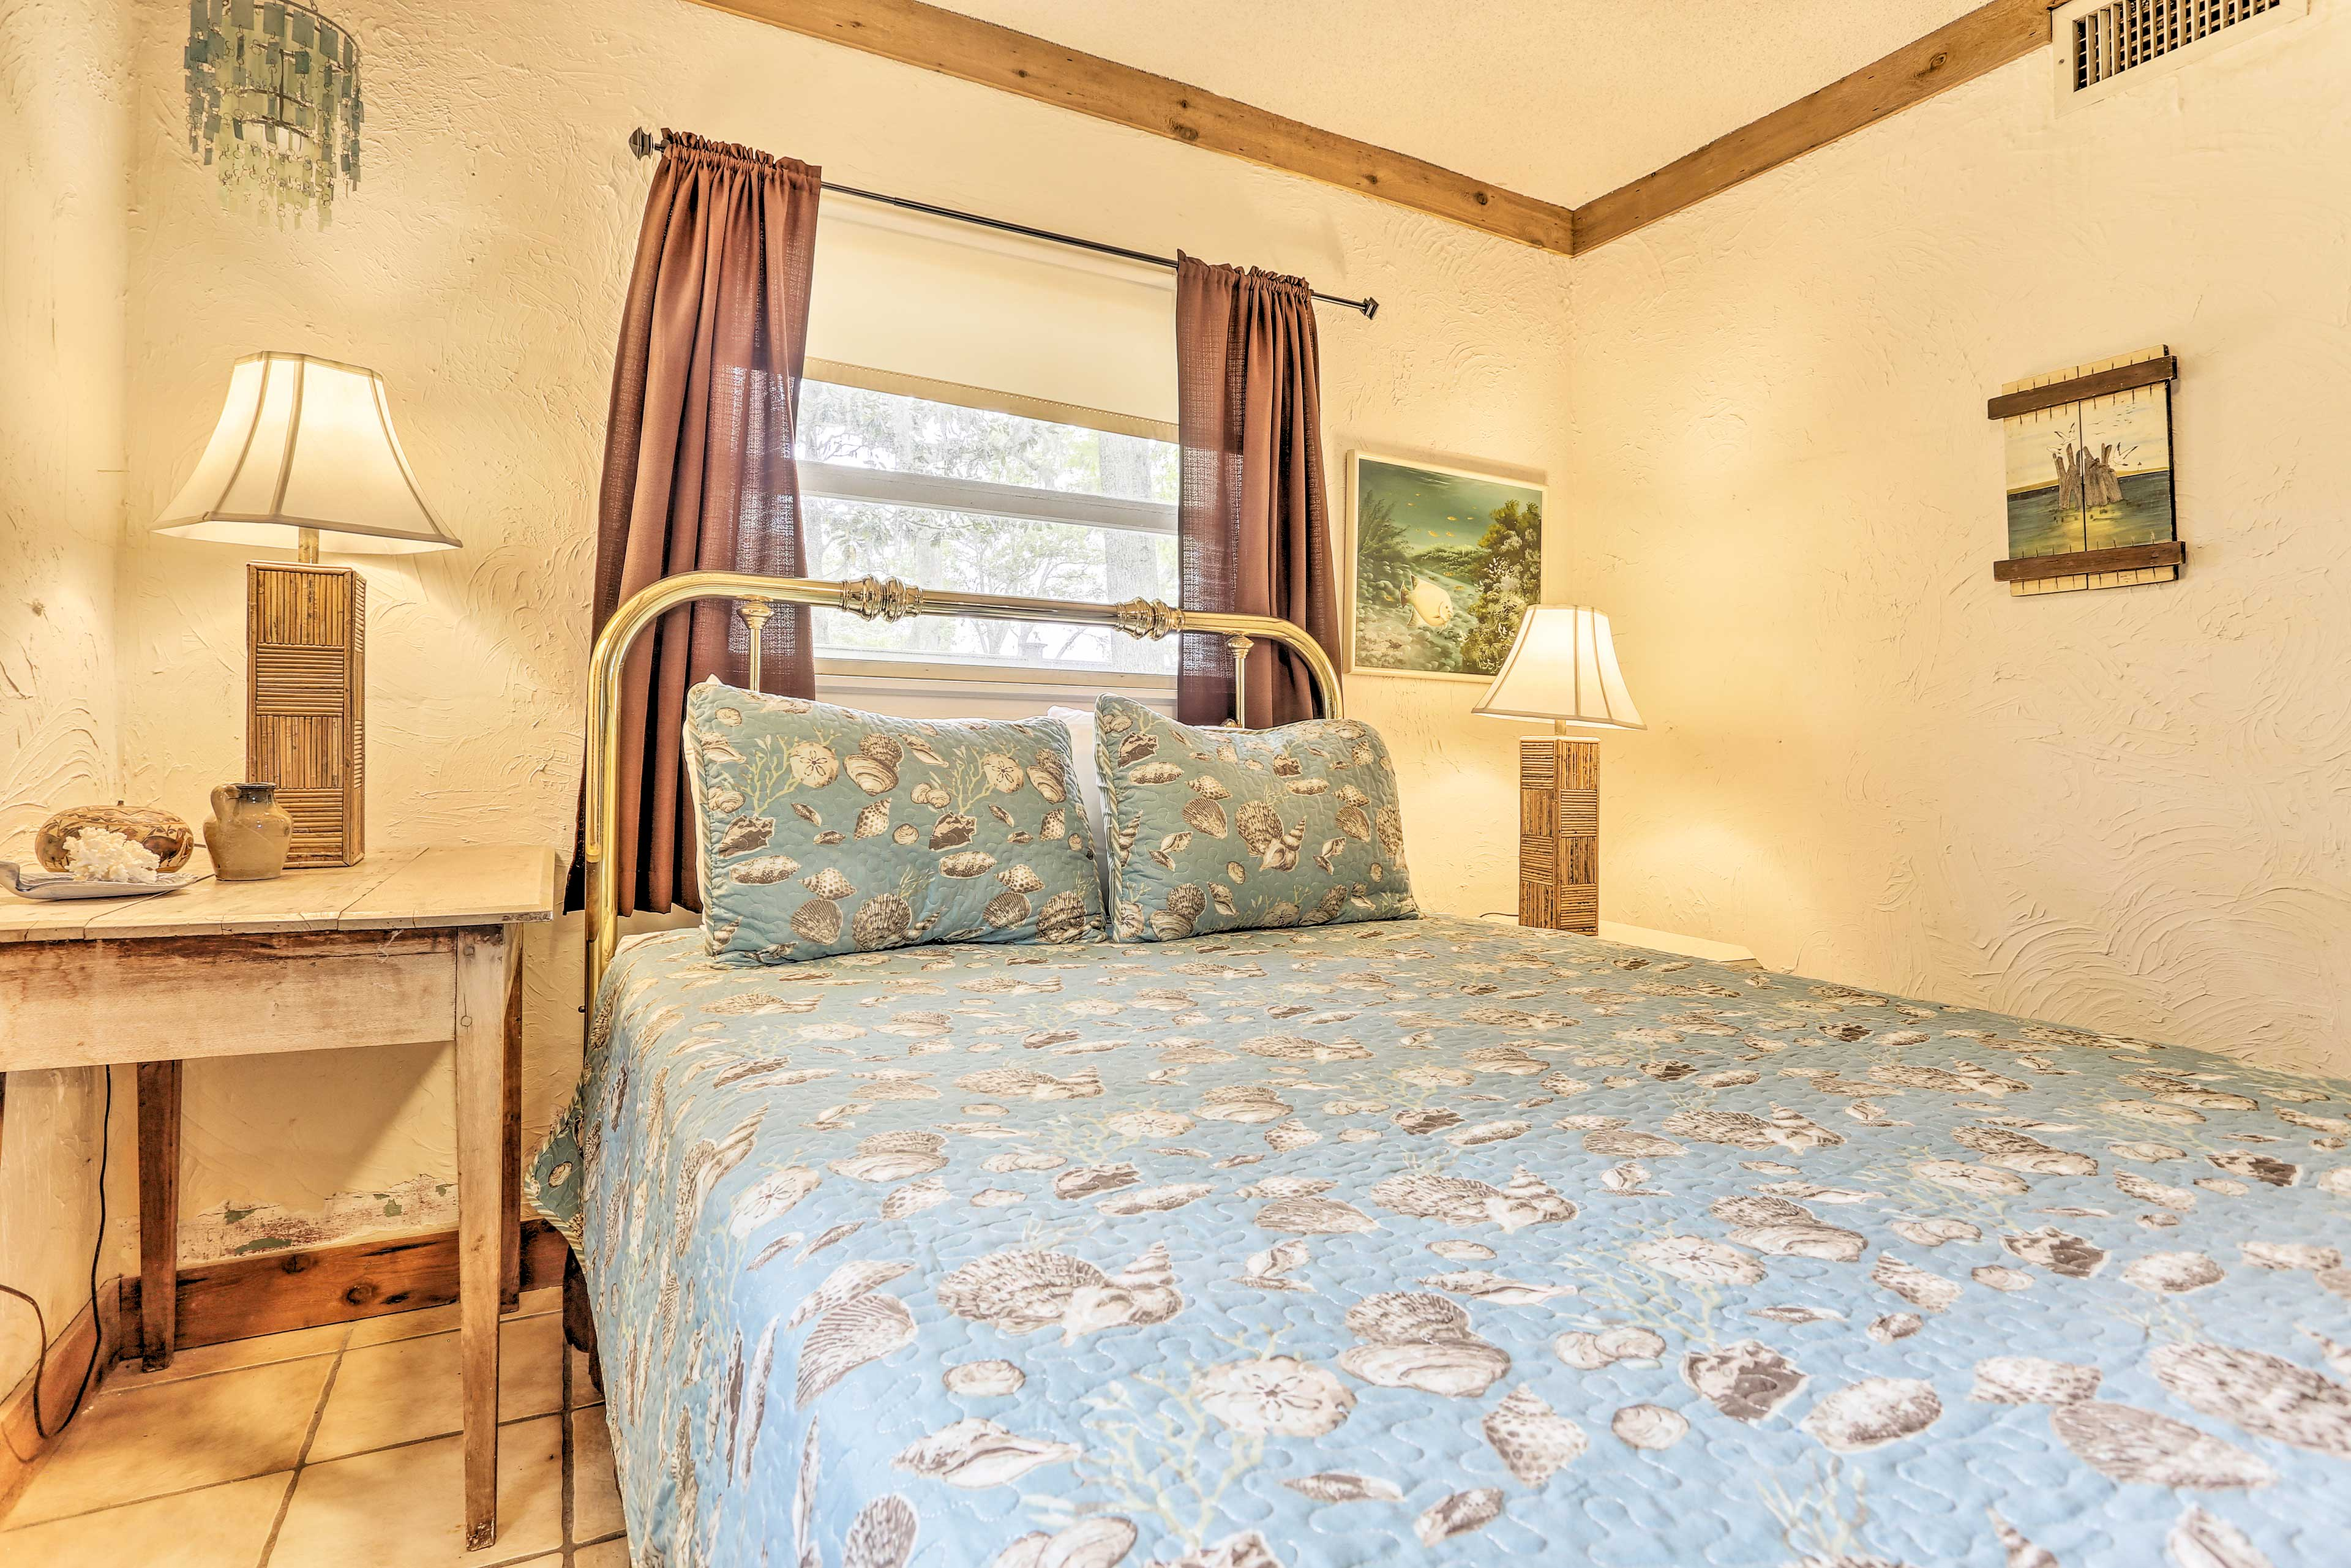 The home comfortably sleeps your group of family or friends!